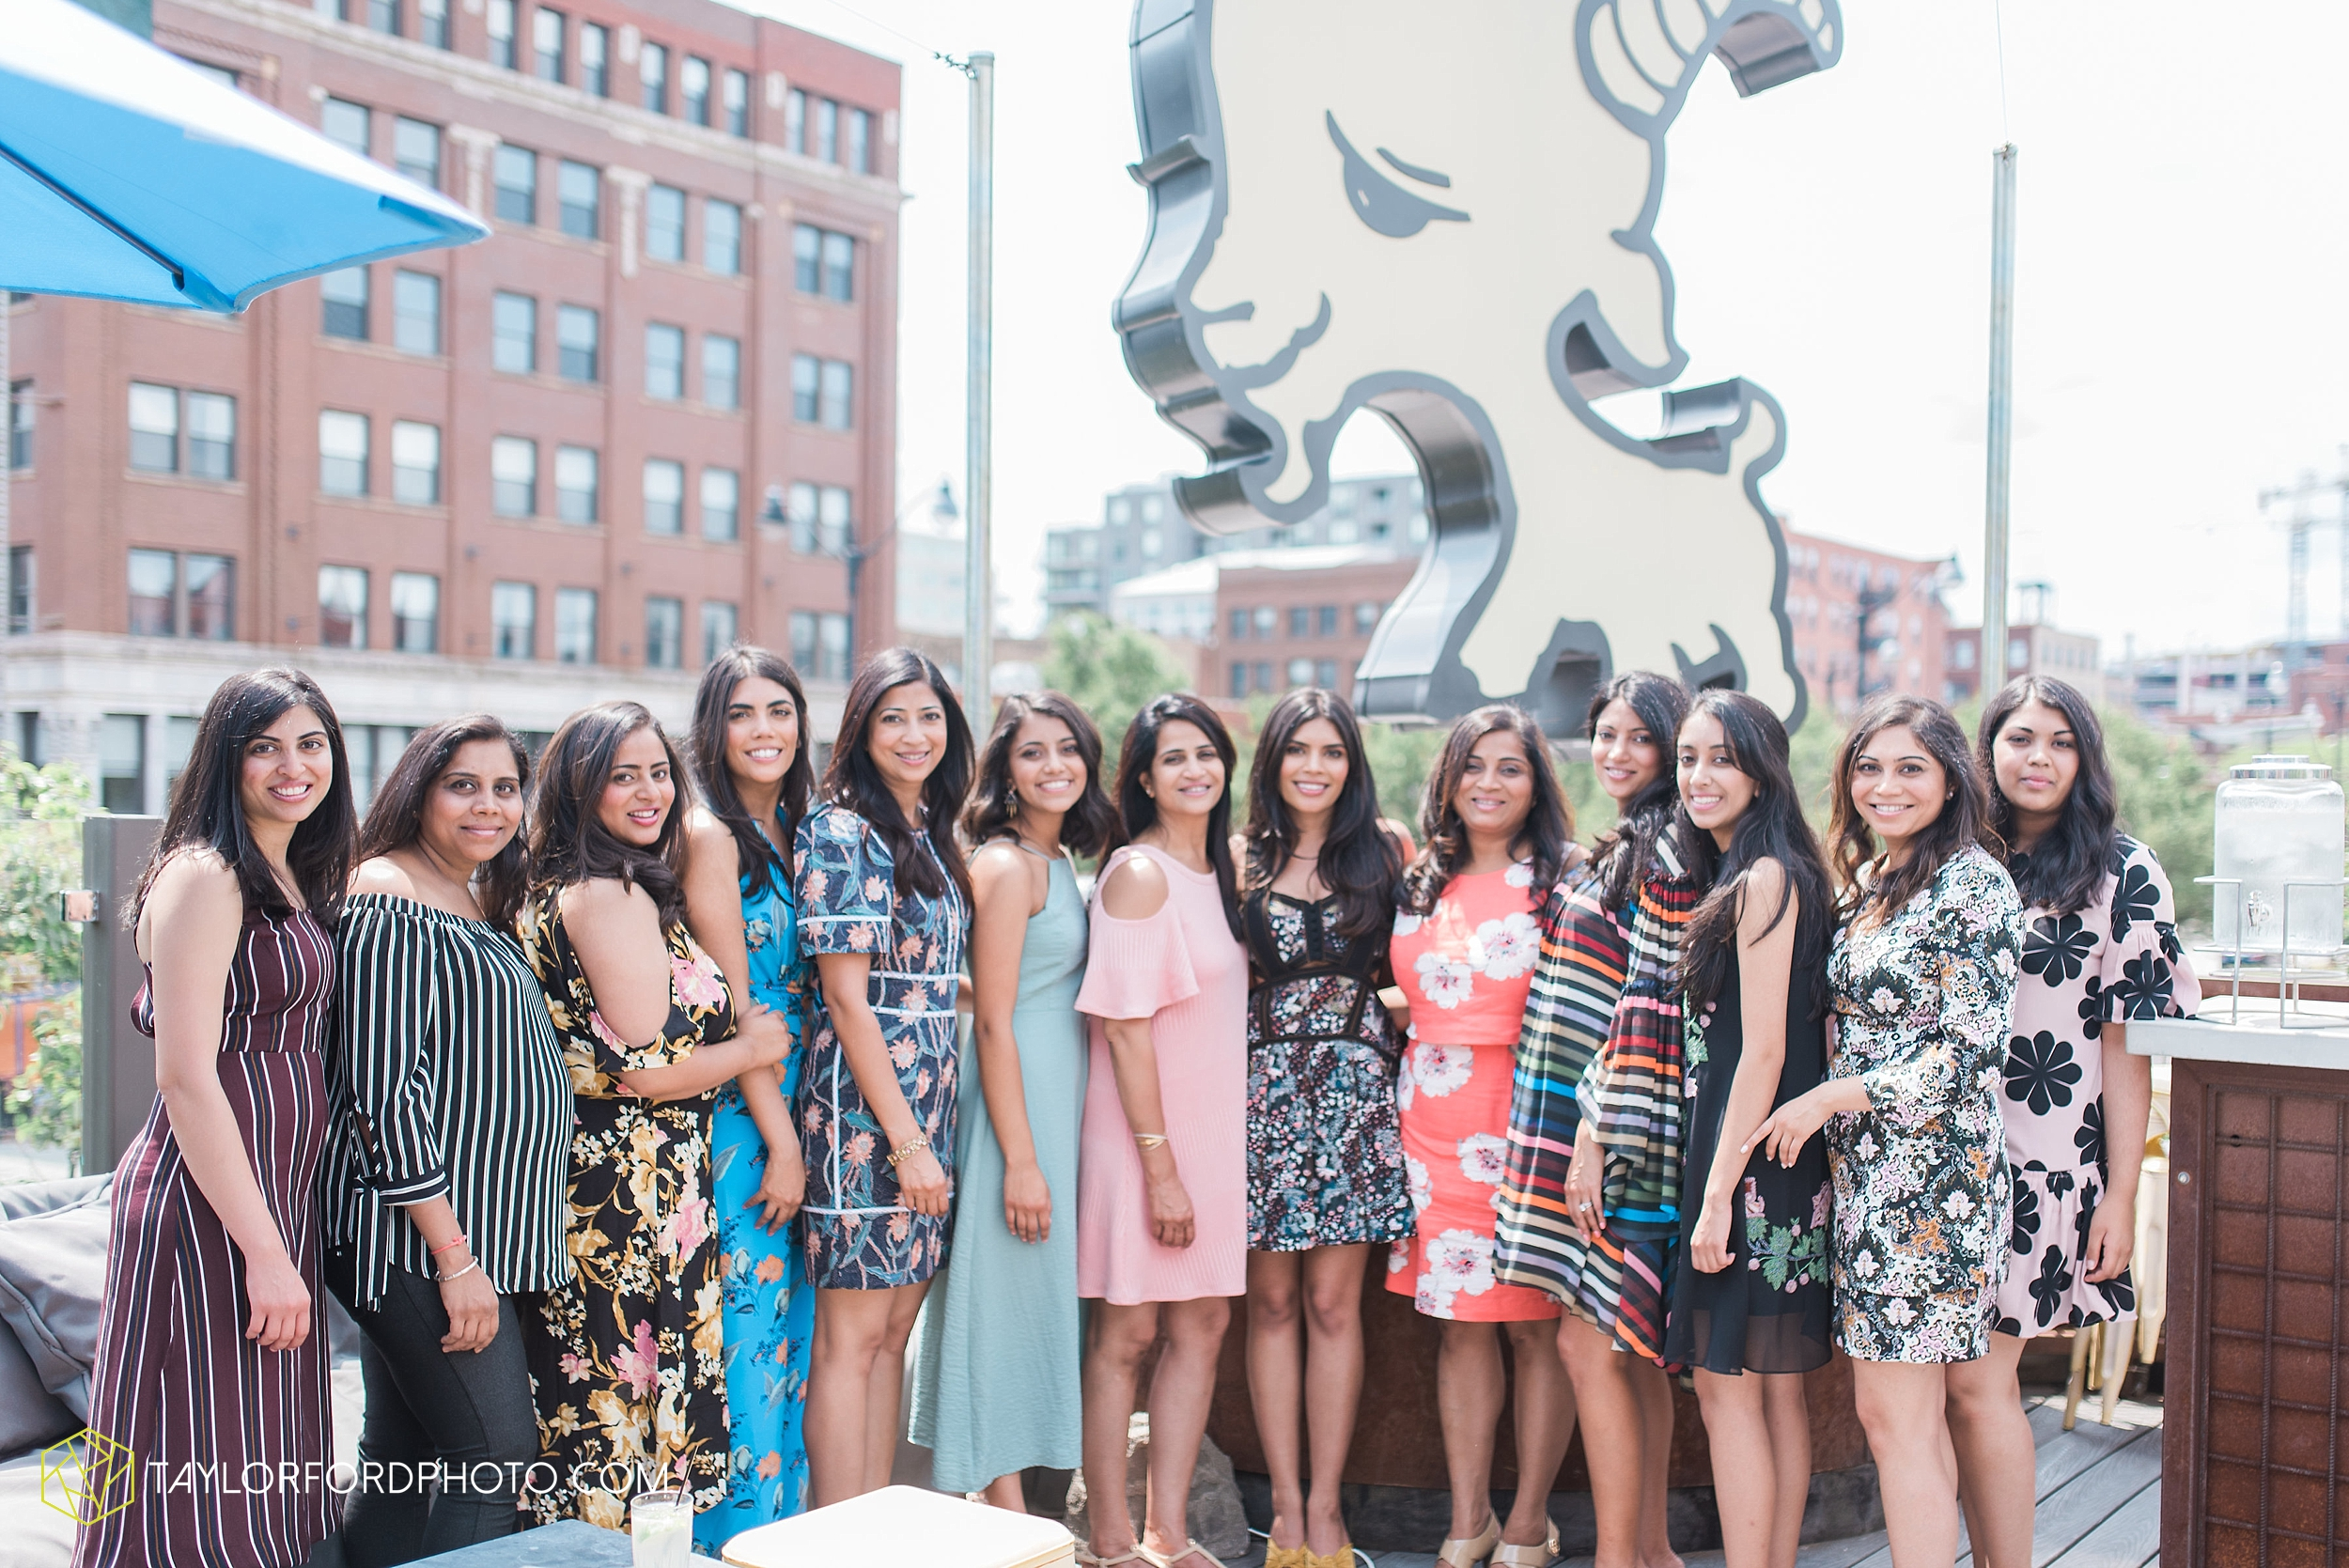 chicago-illinois-bridal-shower-wedding-engagement-photographer-Taylor-Ford-Photography-the-little-goat-diner-rooftop-indian-ceremony_5093.jpg